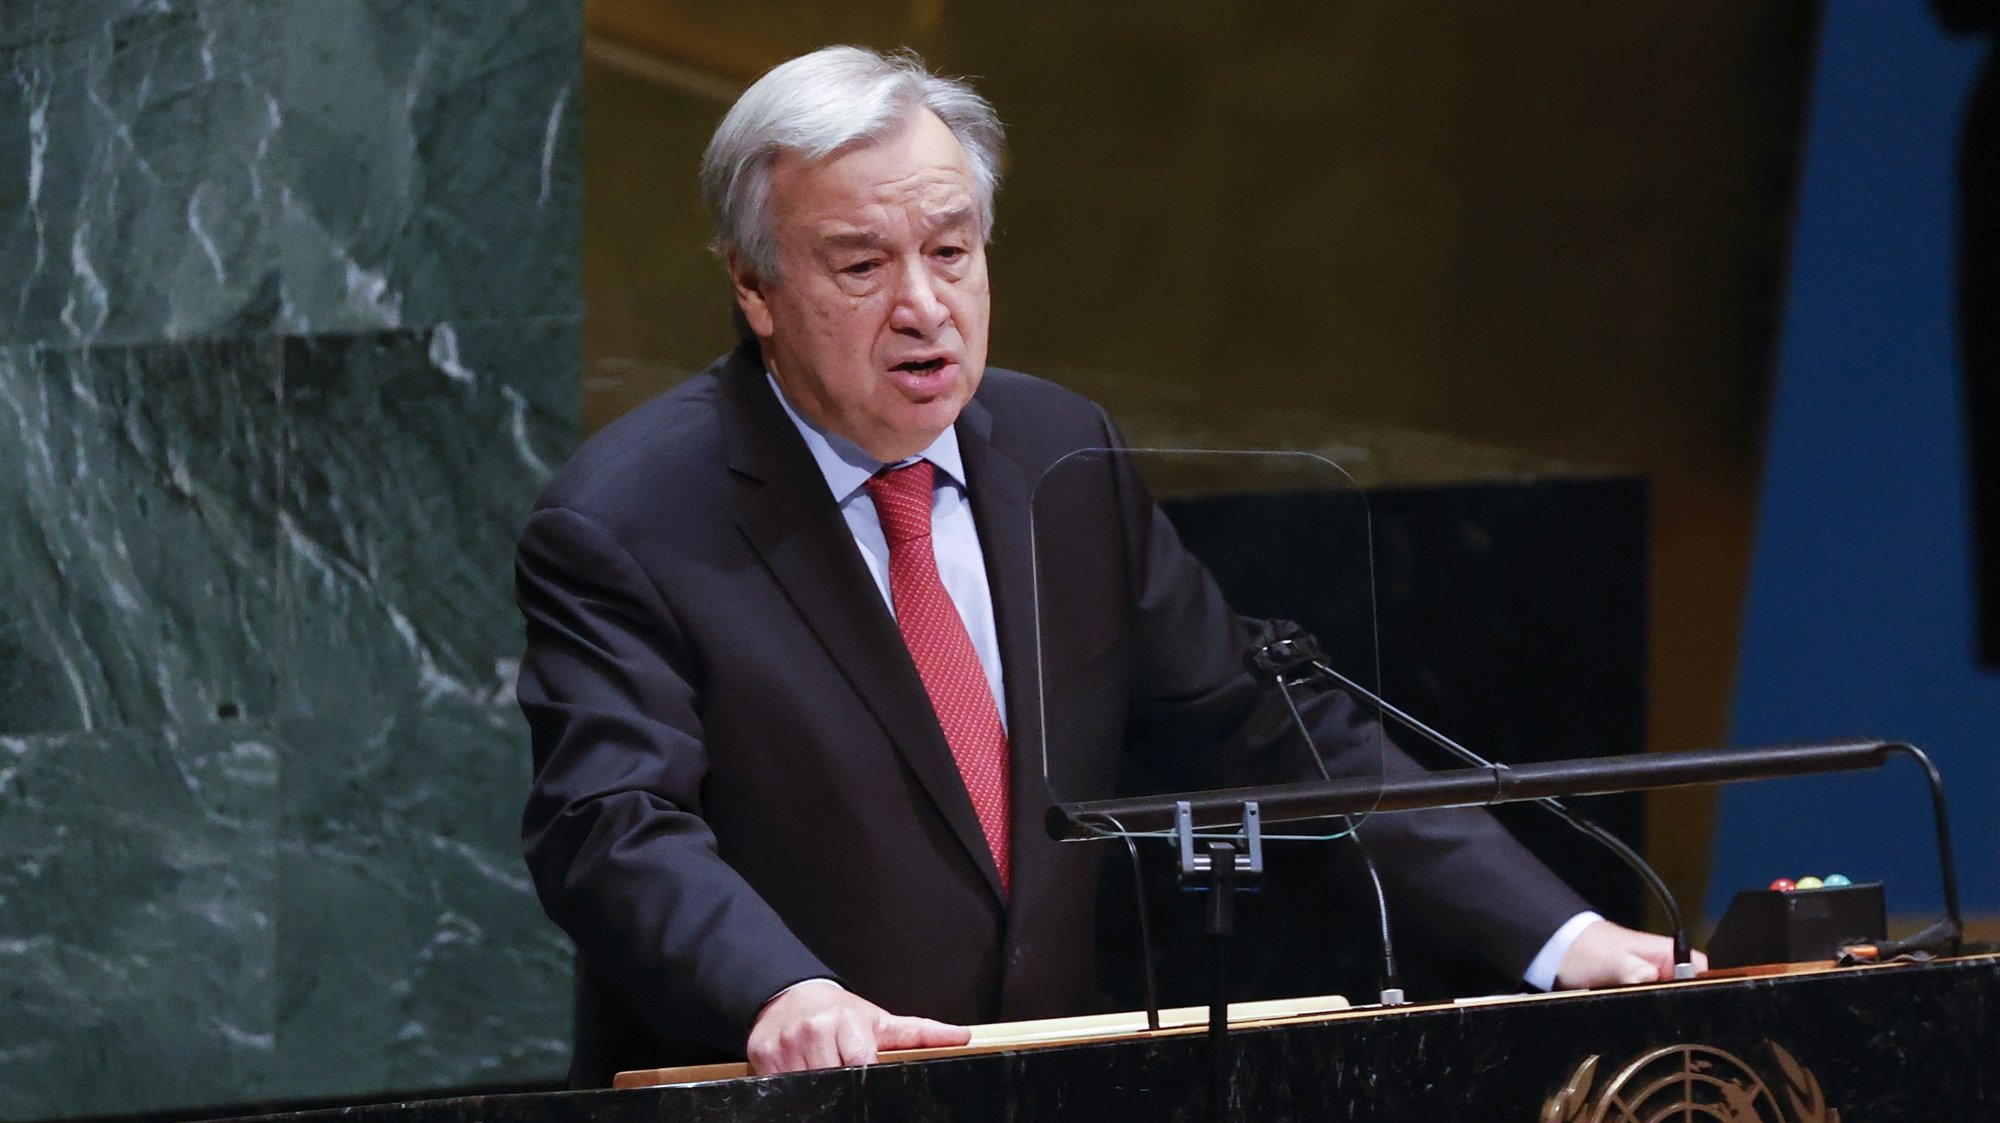 epa09215253 United Nations Secretary General Antonio Guterres addresses the United Nations General Assembly on the situation in the Middle East, including the Palestinian question, at United Nations Headquarters in New York, New York, USA, 20 May 2021.  EPA/JASON SZENES